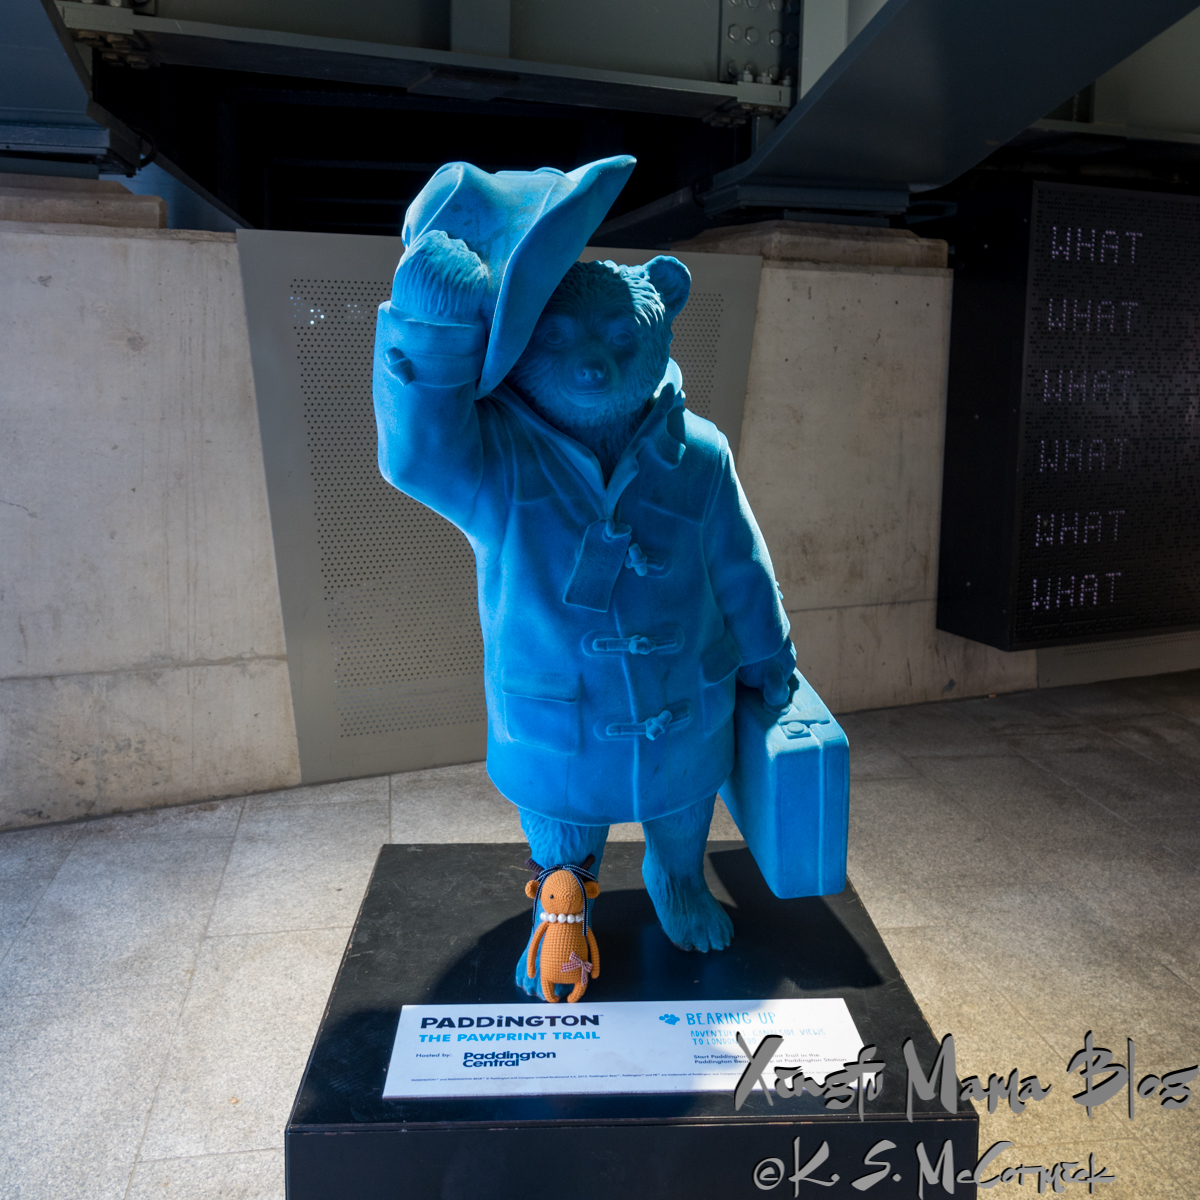 A blue flocked statue of Paddington Bear.